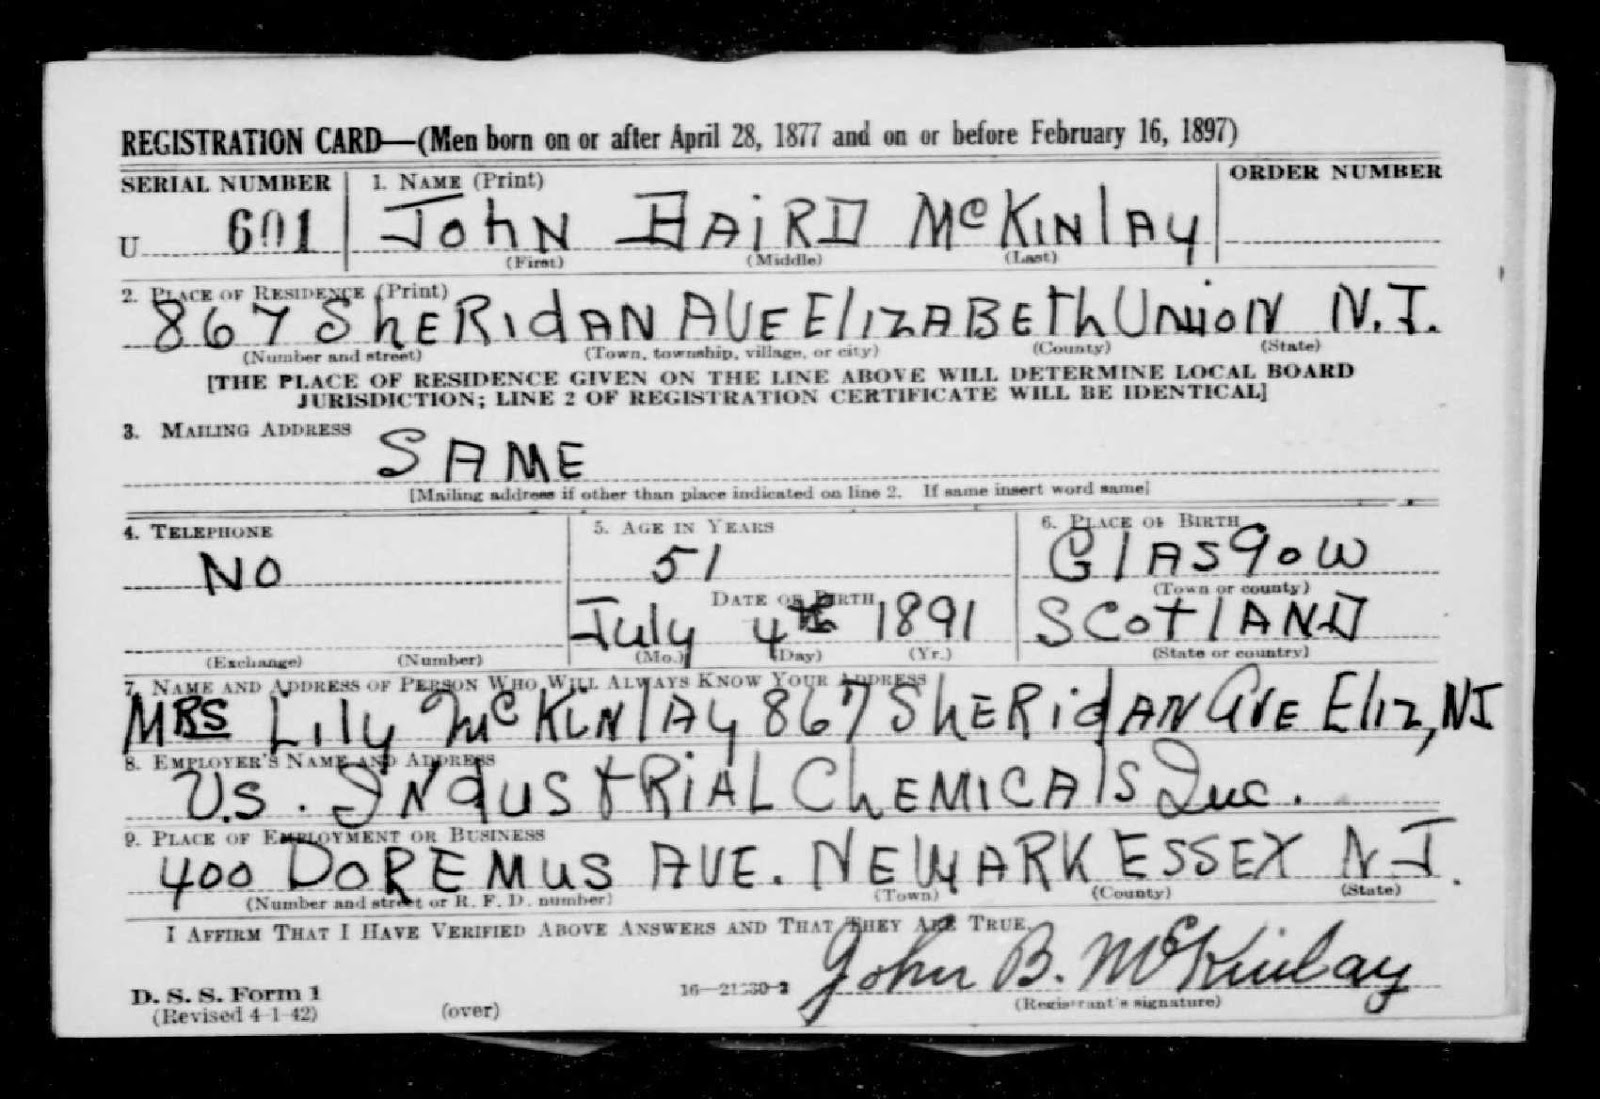 "Ancestry.com, ""U.S. World War II Draft Registration Cards, 1942,"" database on-line, Ancestry.com (http://www.ancestry.com/ : accessed 9 Mar 2015), entry for John Baird McKinlay, serial number U601, Draft Board 8, Elizabeth, Union County, New Jersey; citing Selective Service Registration Cards, World War II: Fourth Registration. Records of the Selective Service System, Record Group Number 147, National Archives and Records Administration."